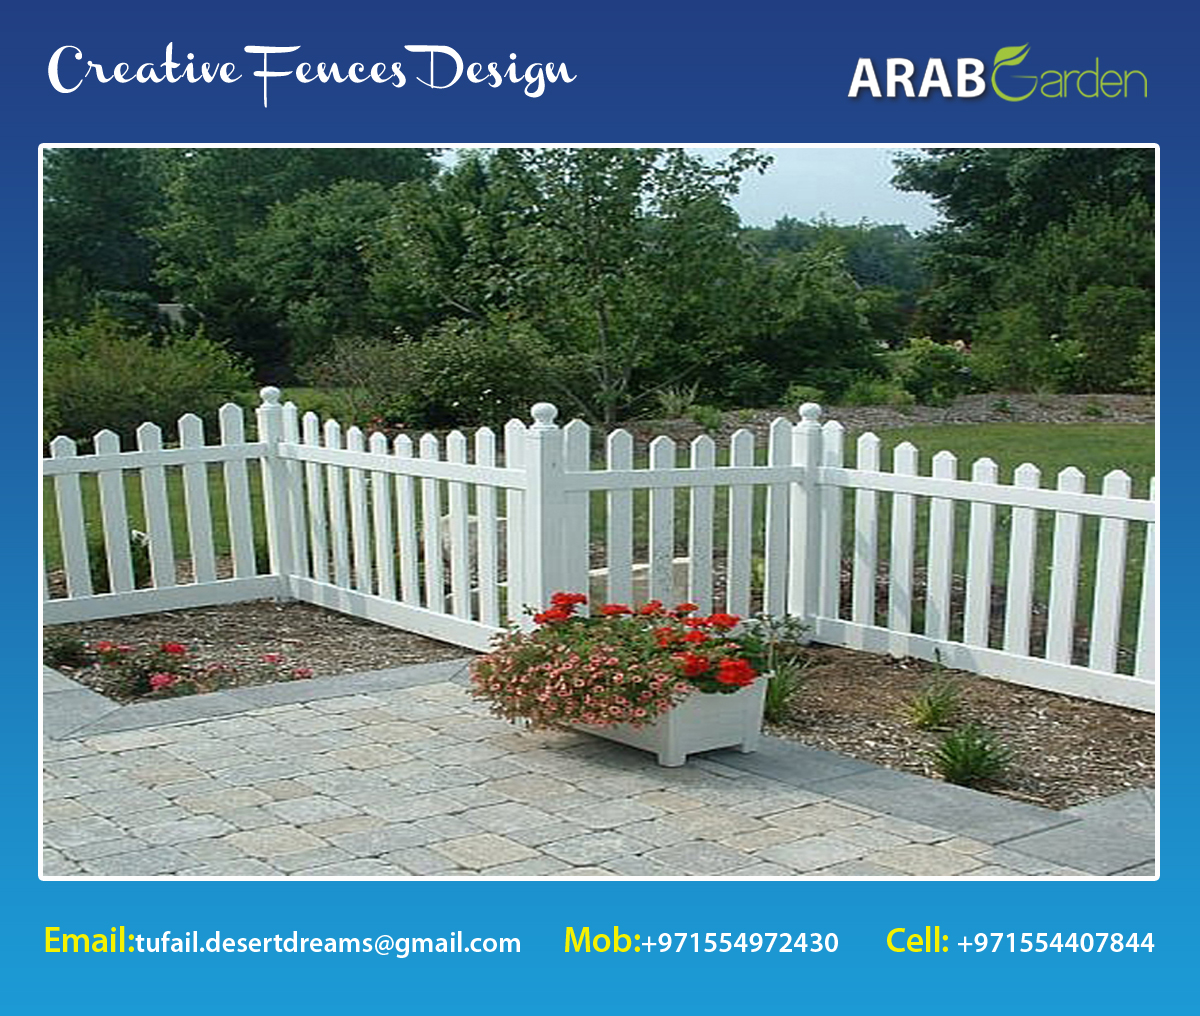 Exceptionnel Wooden Fence | Wooden Privacy Fence | Wooden Fence U0026 Gates | Wooden Kids  Fence In U.A.E